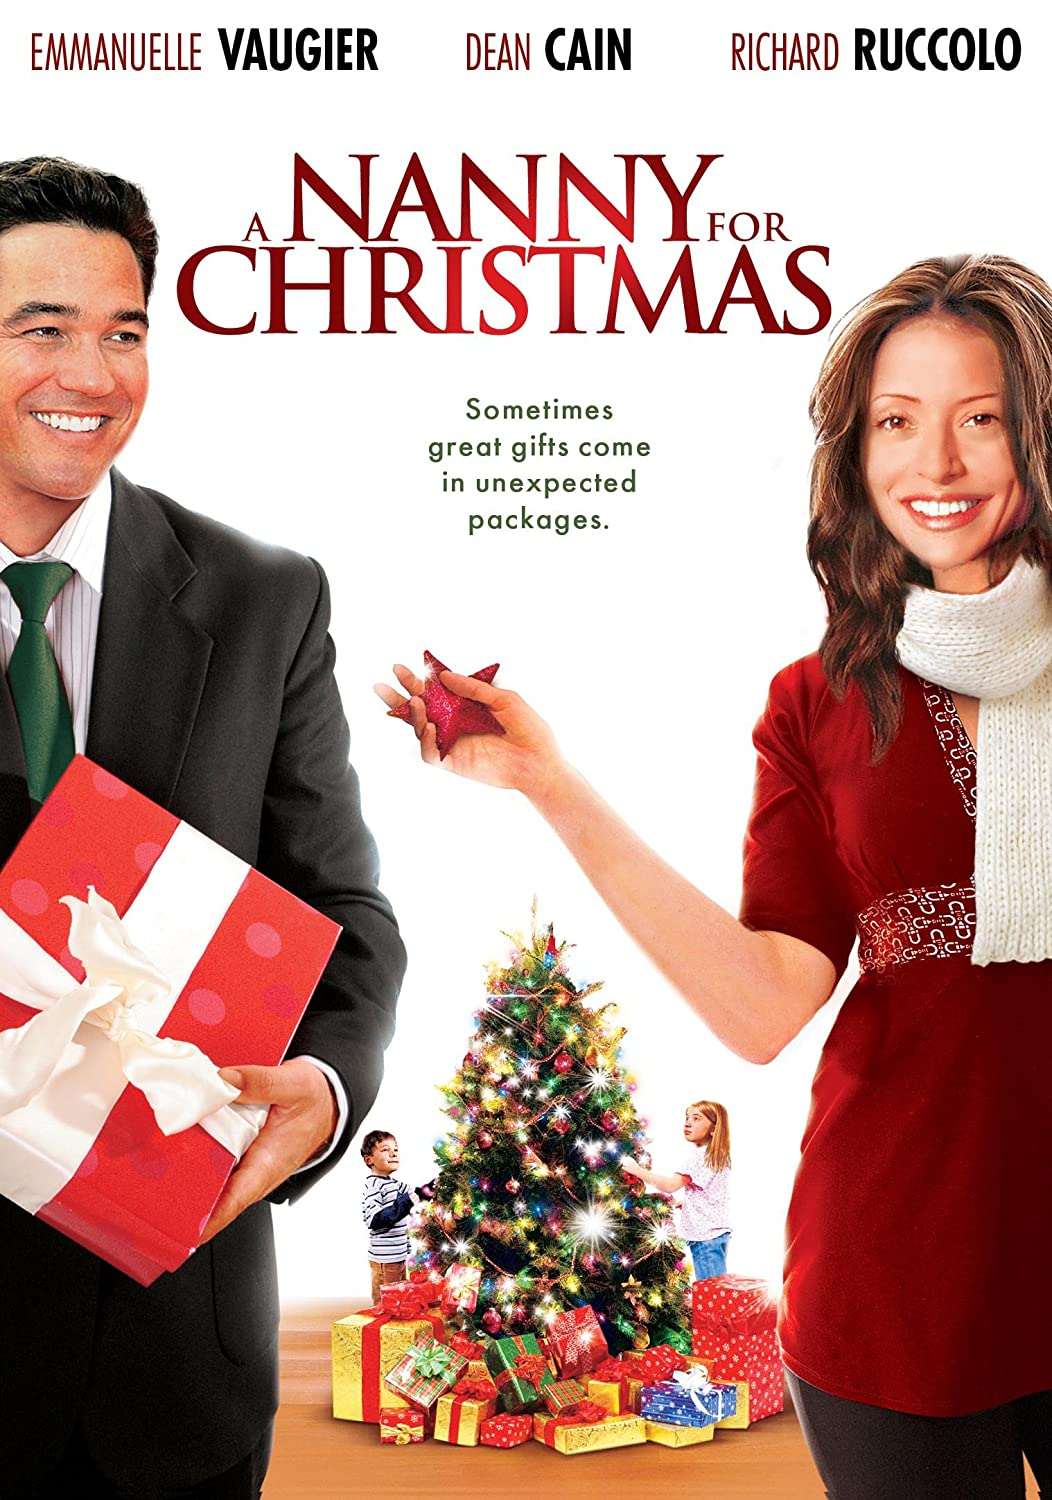 Amazon.com: Nanny For Christmas, A: Emmanuelle Vaugier, Dean Cain ...